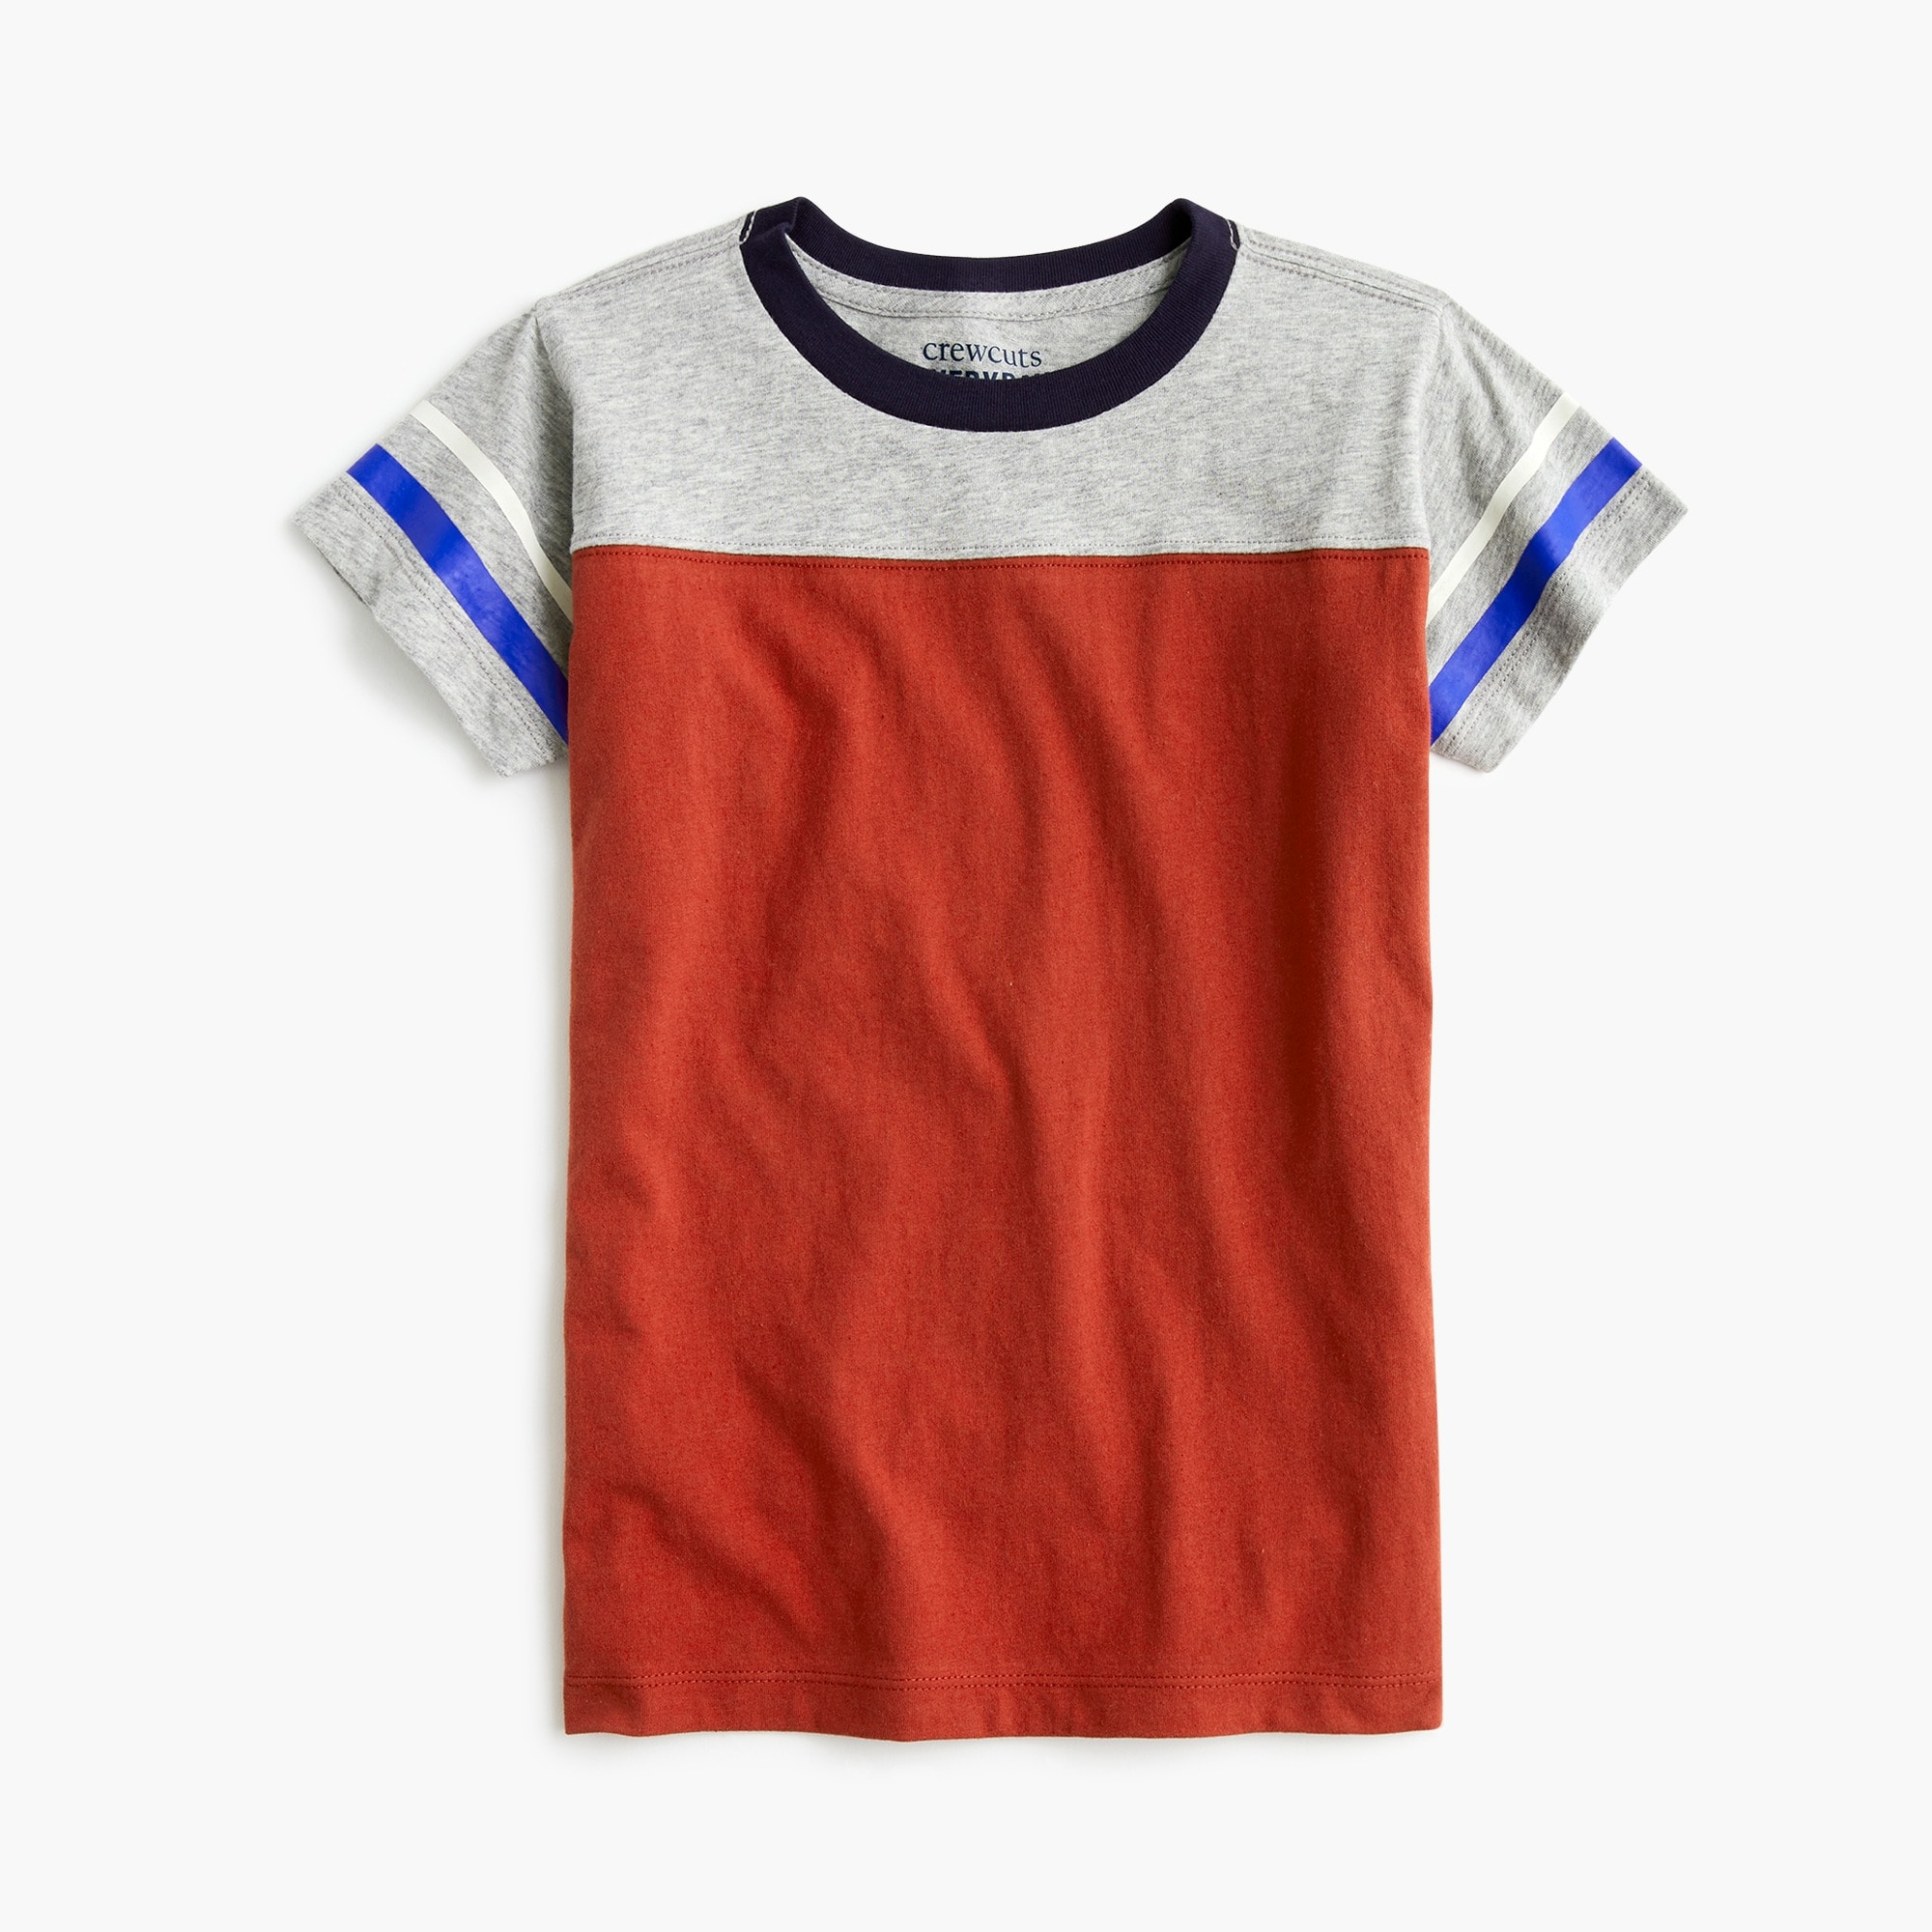 Image 1 for Boys' striped football T-shirt